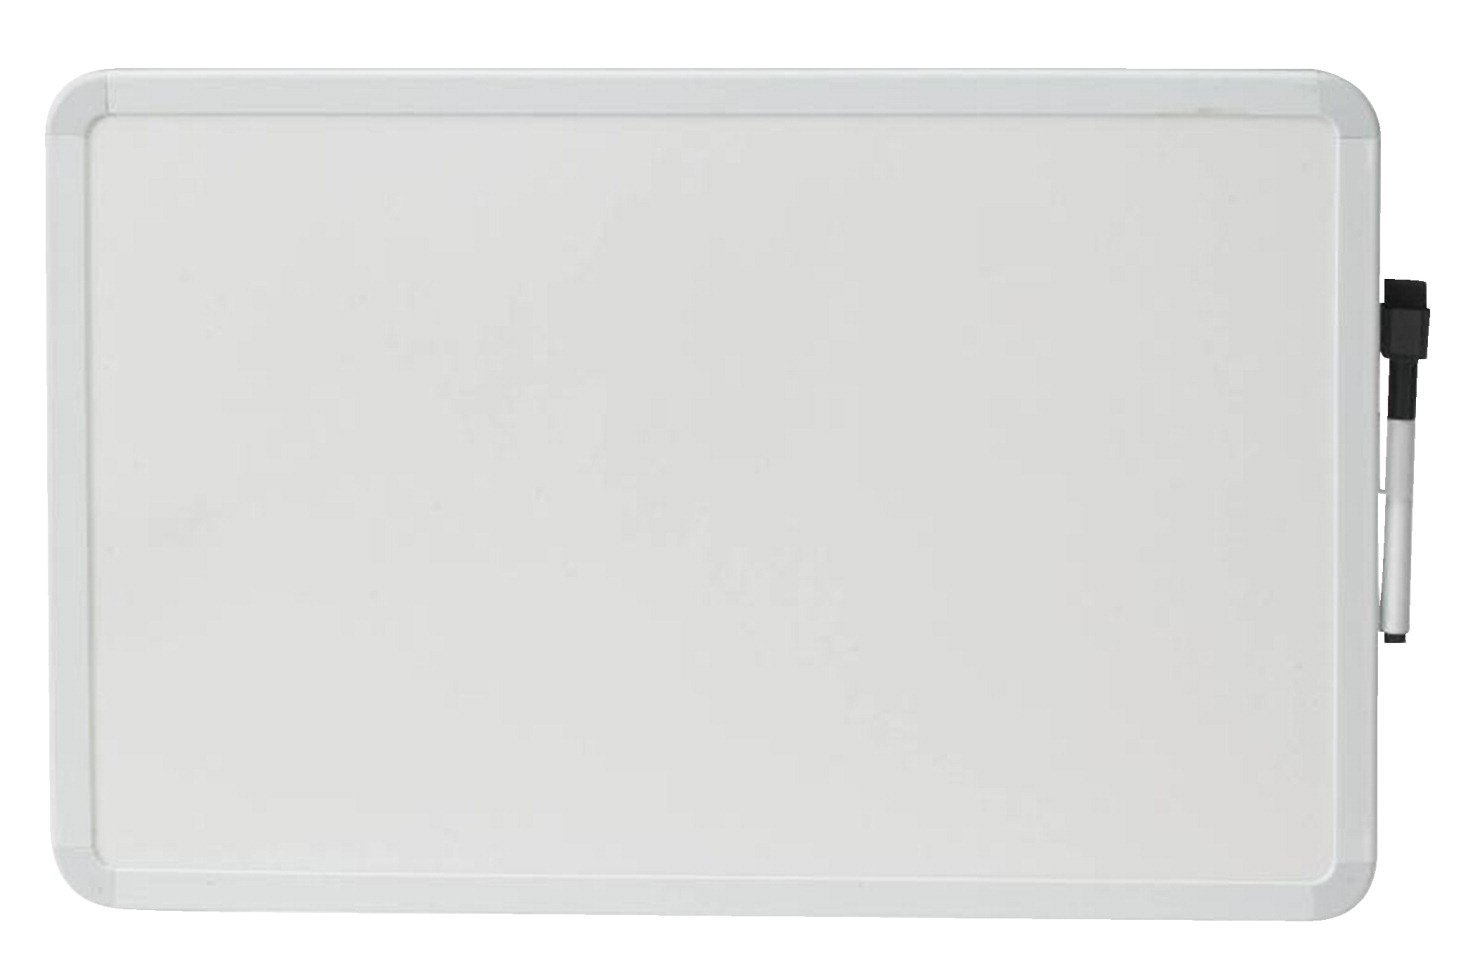 School Smart 633747 Dry Erase Boards - 11 x 17 inches - White